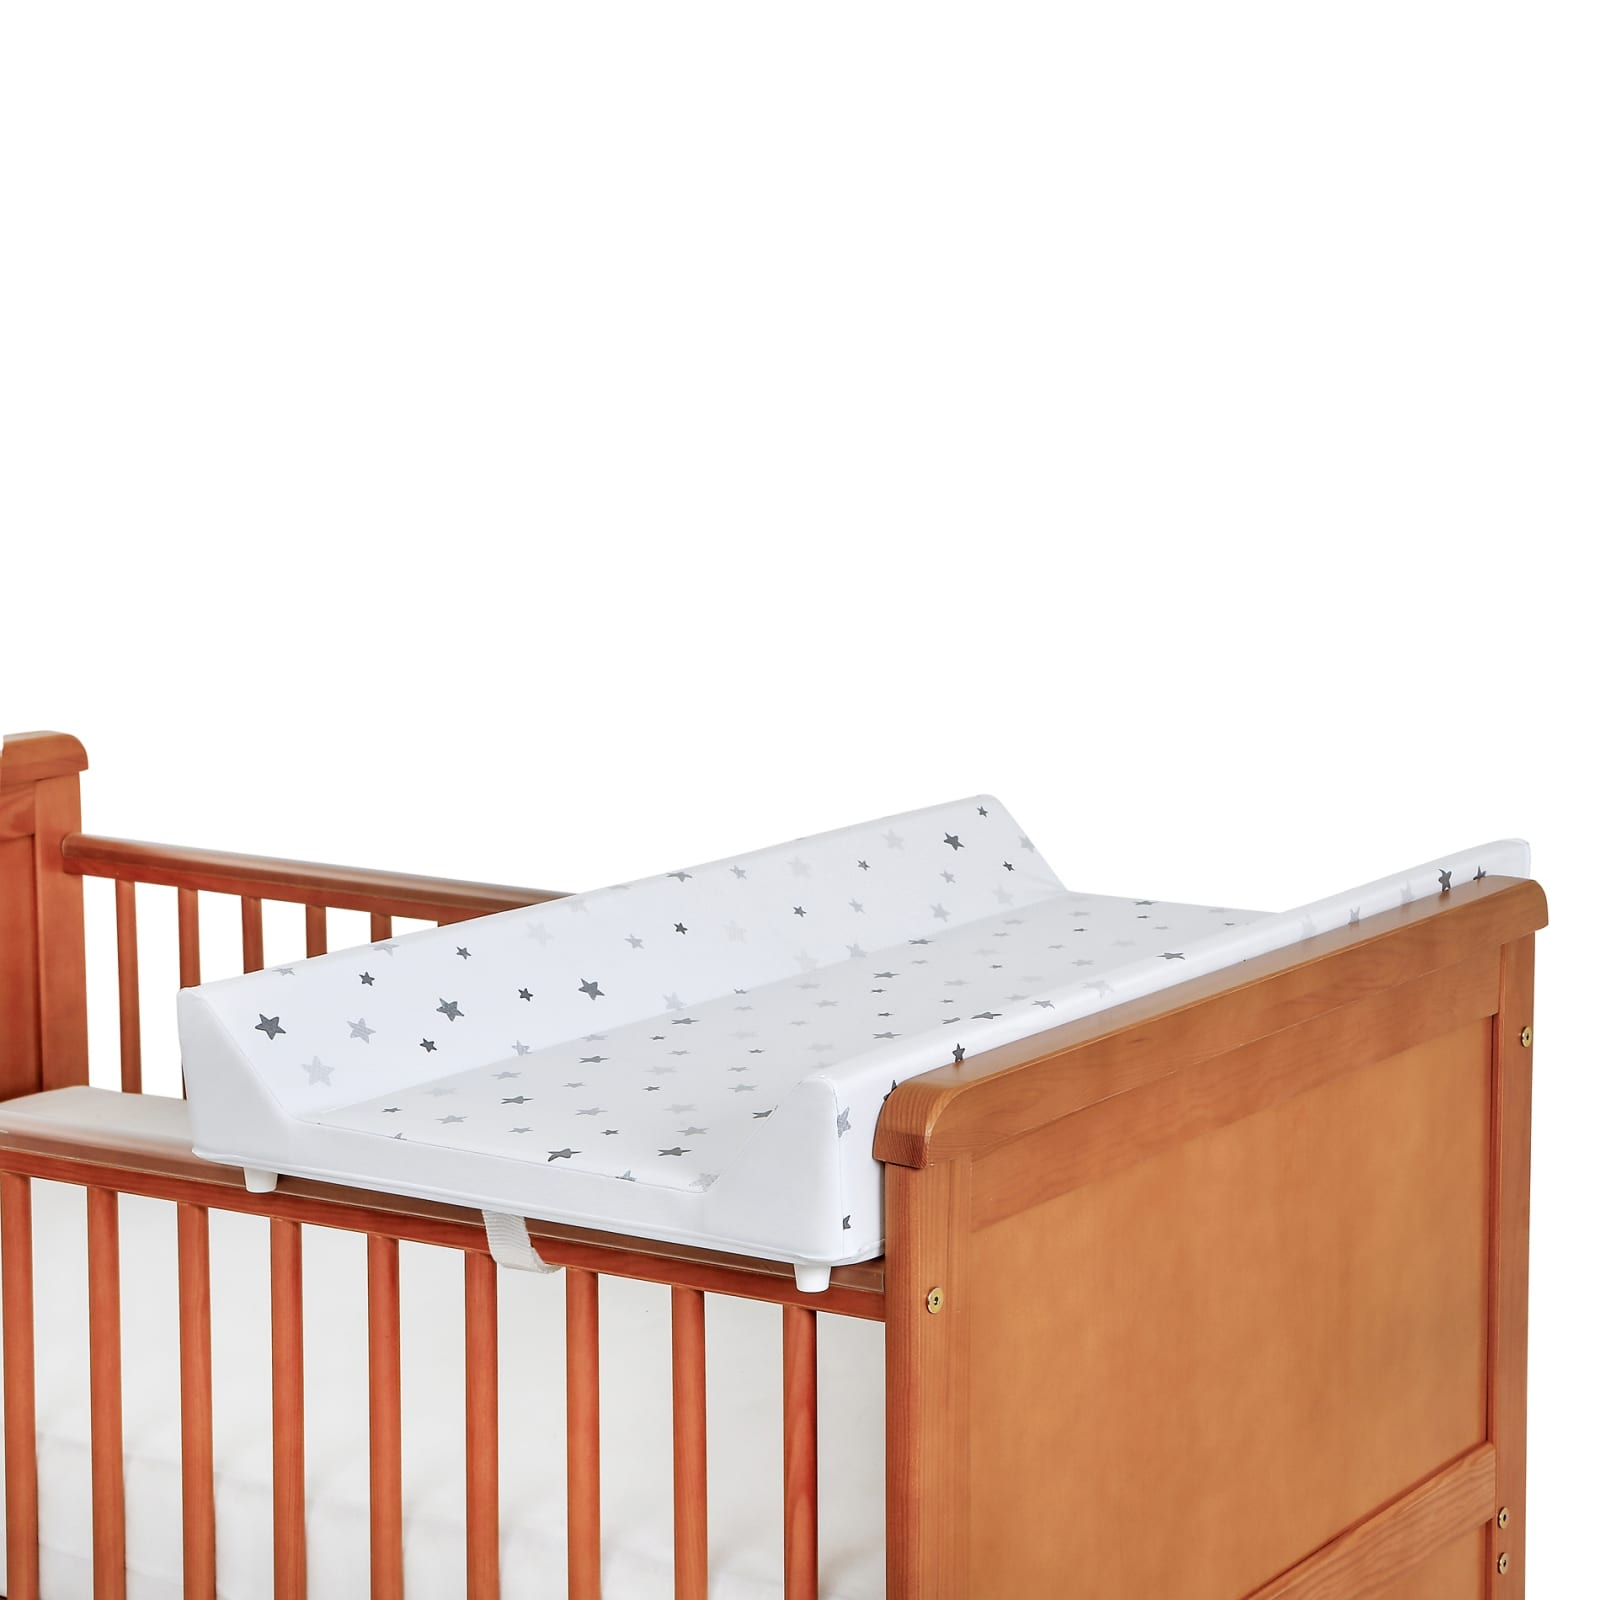 PVC Cot Top Changer – Grey product image